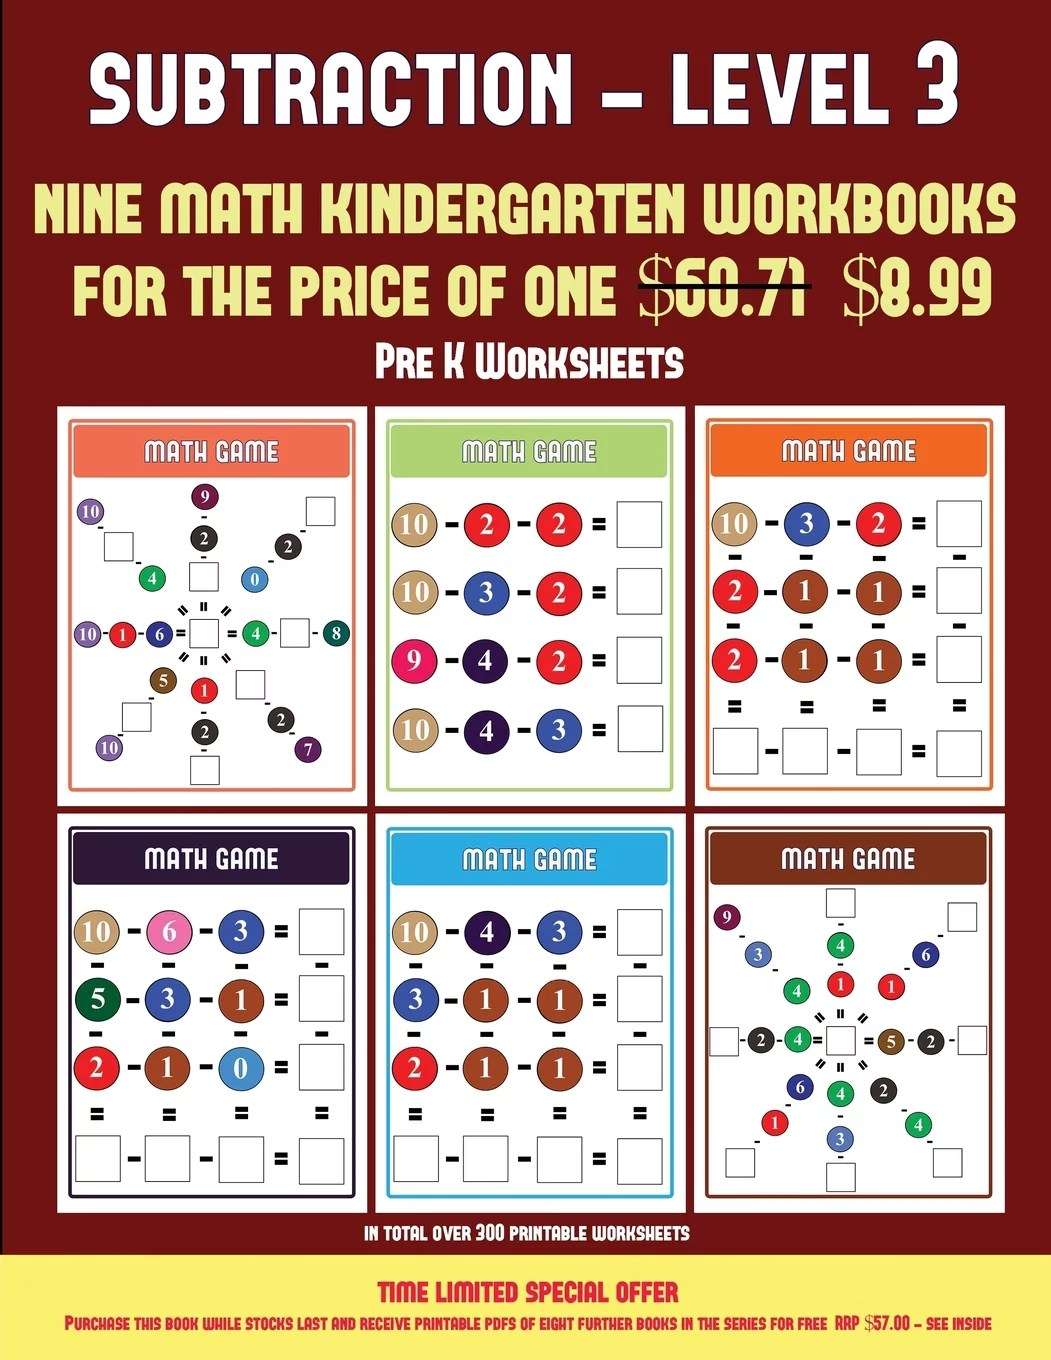 Pre K Worksheets Kindergarten Subtraction Taking Away